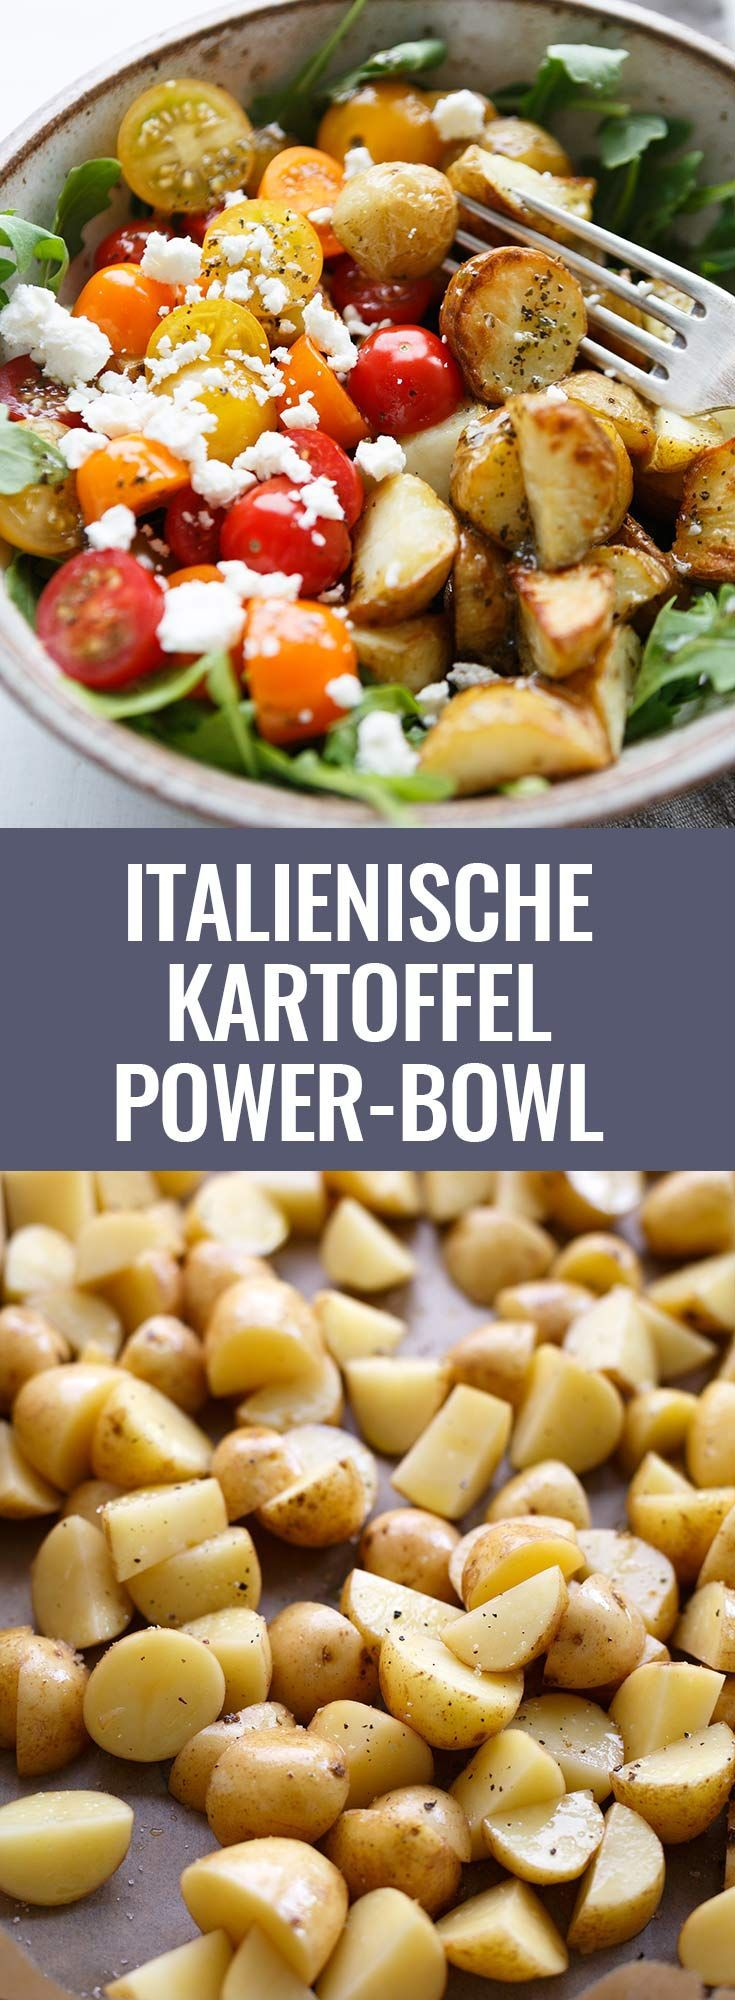 Kartoffel Power Bowl mit Knoblauch-Olivenöl Dressing – Party